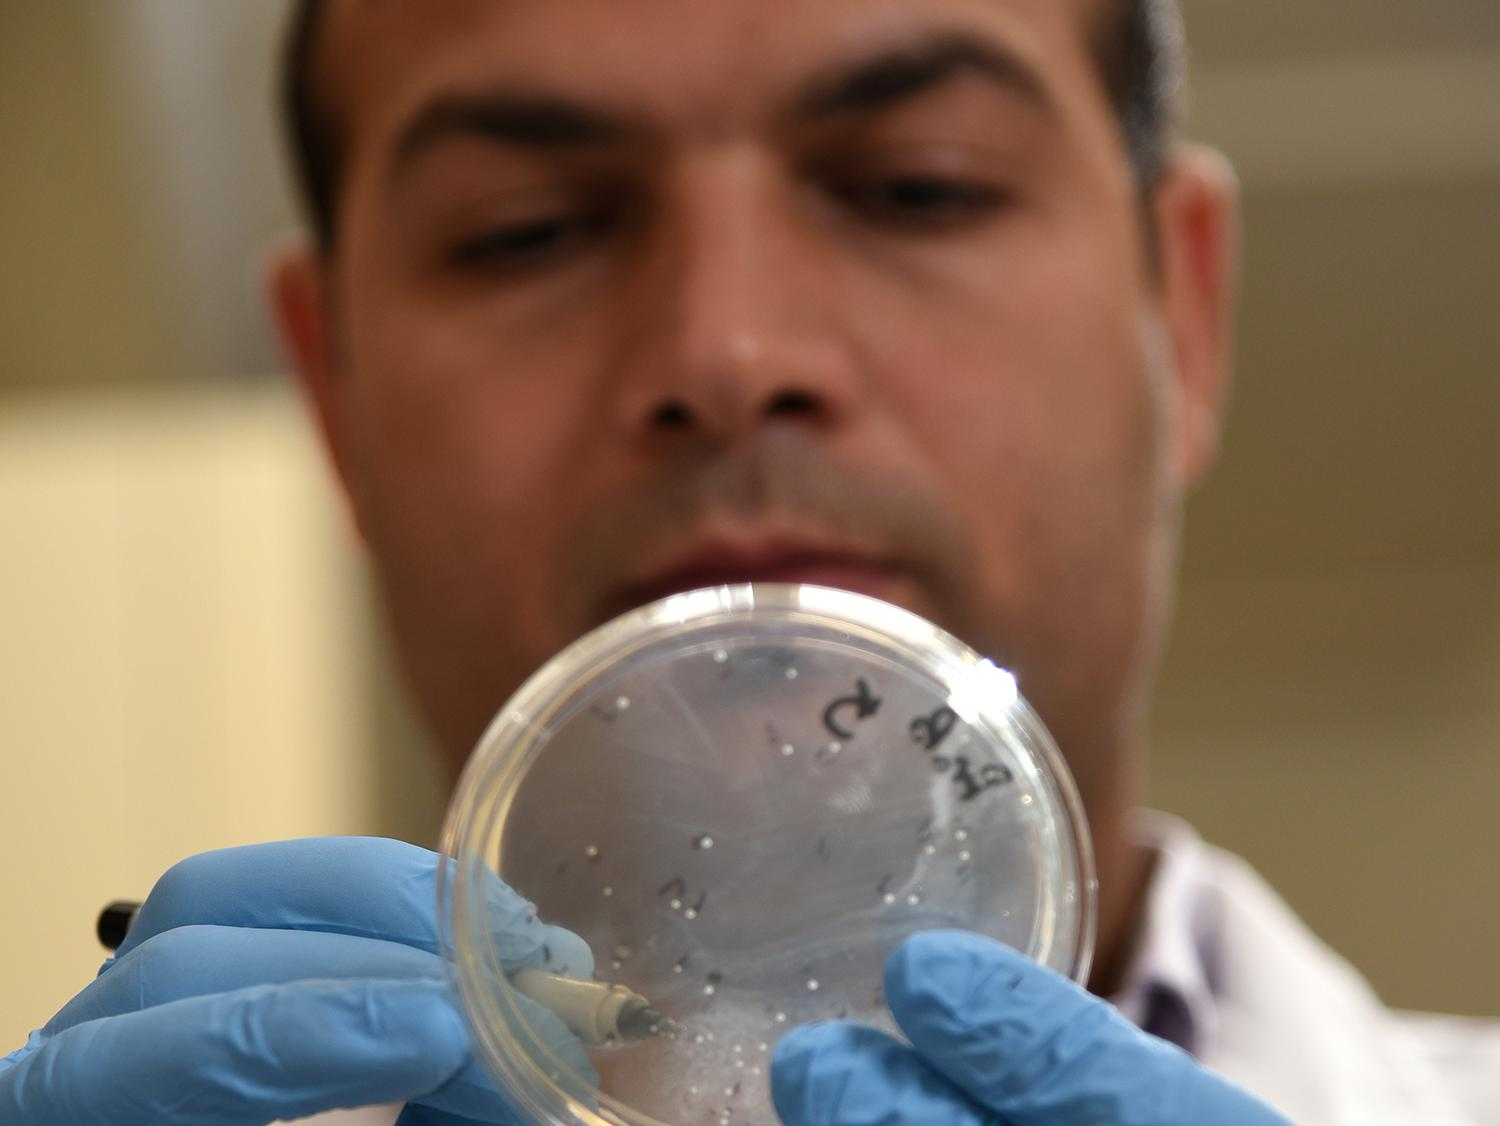 Dr. Hossam Abdelhamed, a postdoctoral fellow at the Mississippi State University College of Veterinary Medicine, examines an agar plate with bacterial colonies of listeria. A group of researchers at the college, including Abdelhamed, developed a faster, more efficient method of performing genetic studies of listeria, which will help scientists worldwide find ways to better control the pathogen and treat those who become ill. (Photo by MSU College of Veterinary Medicine/Tom Thompson)